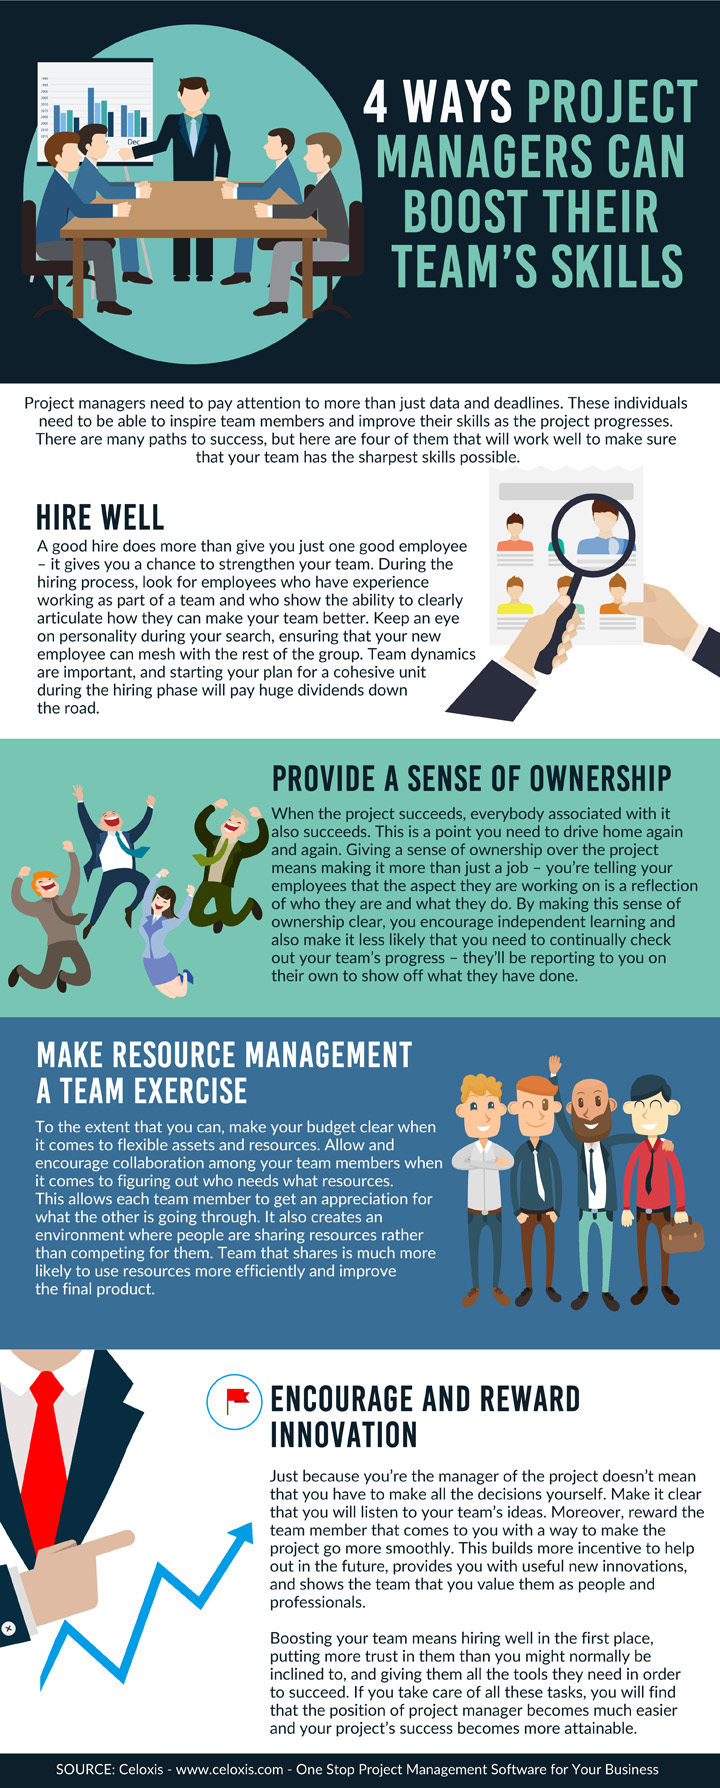 4-ways-project-managers-can-boost-their-teams-skills